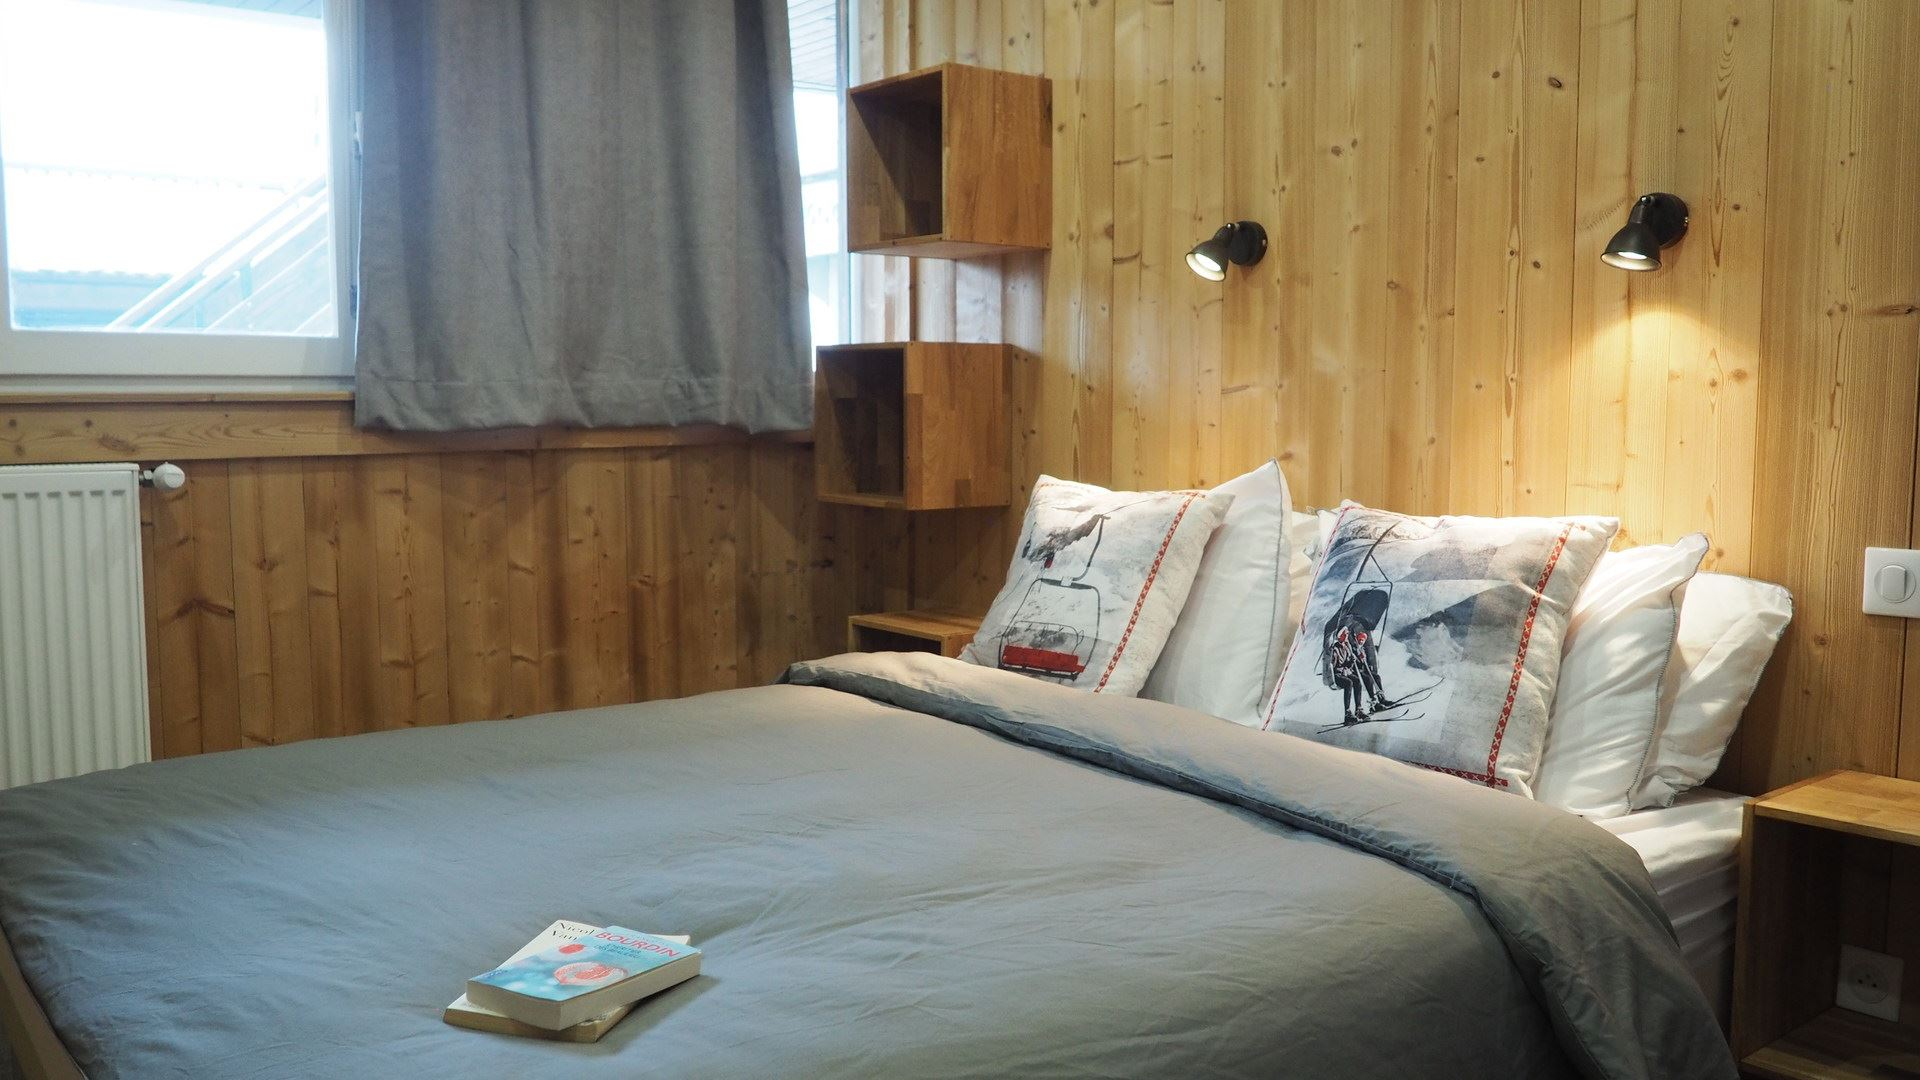 4 Rooms 6 Pers ski-in ski-out / OISANS 3